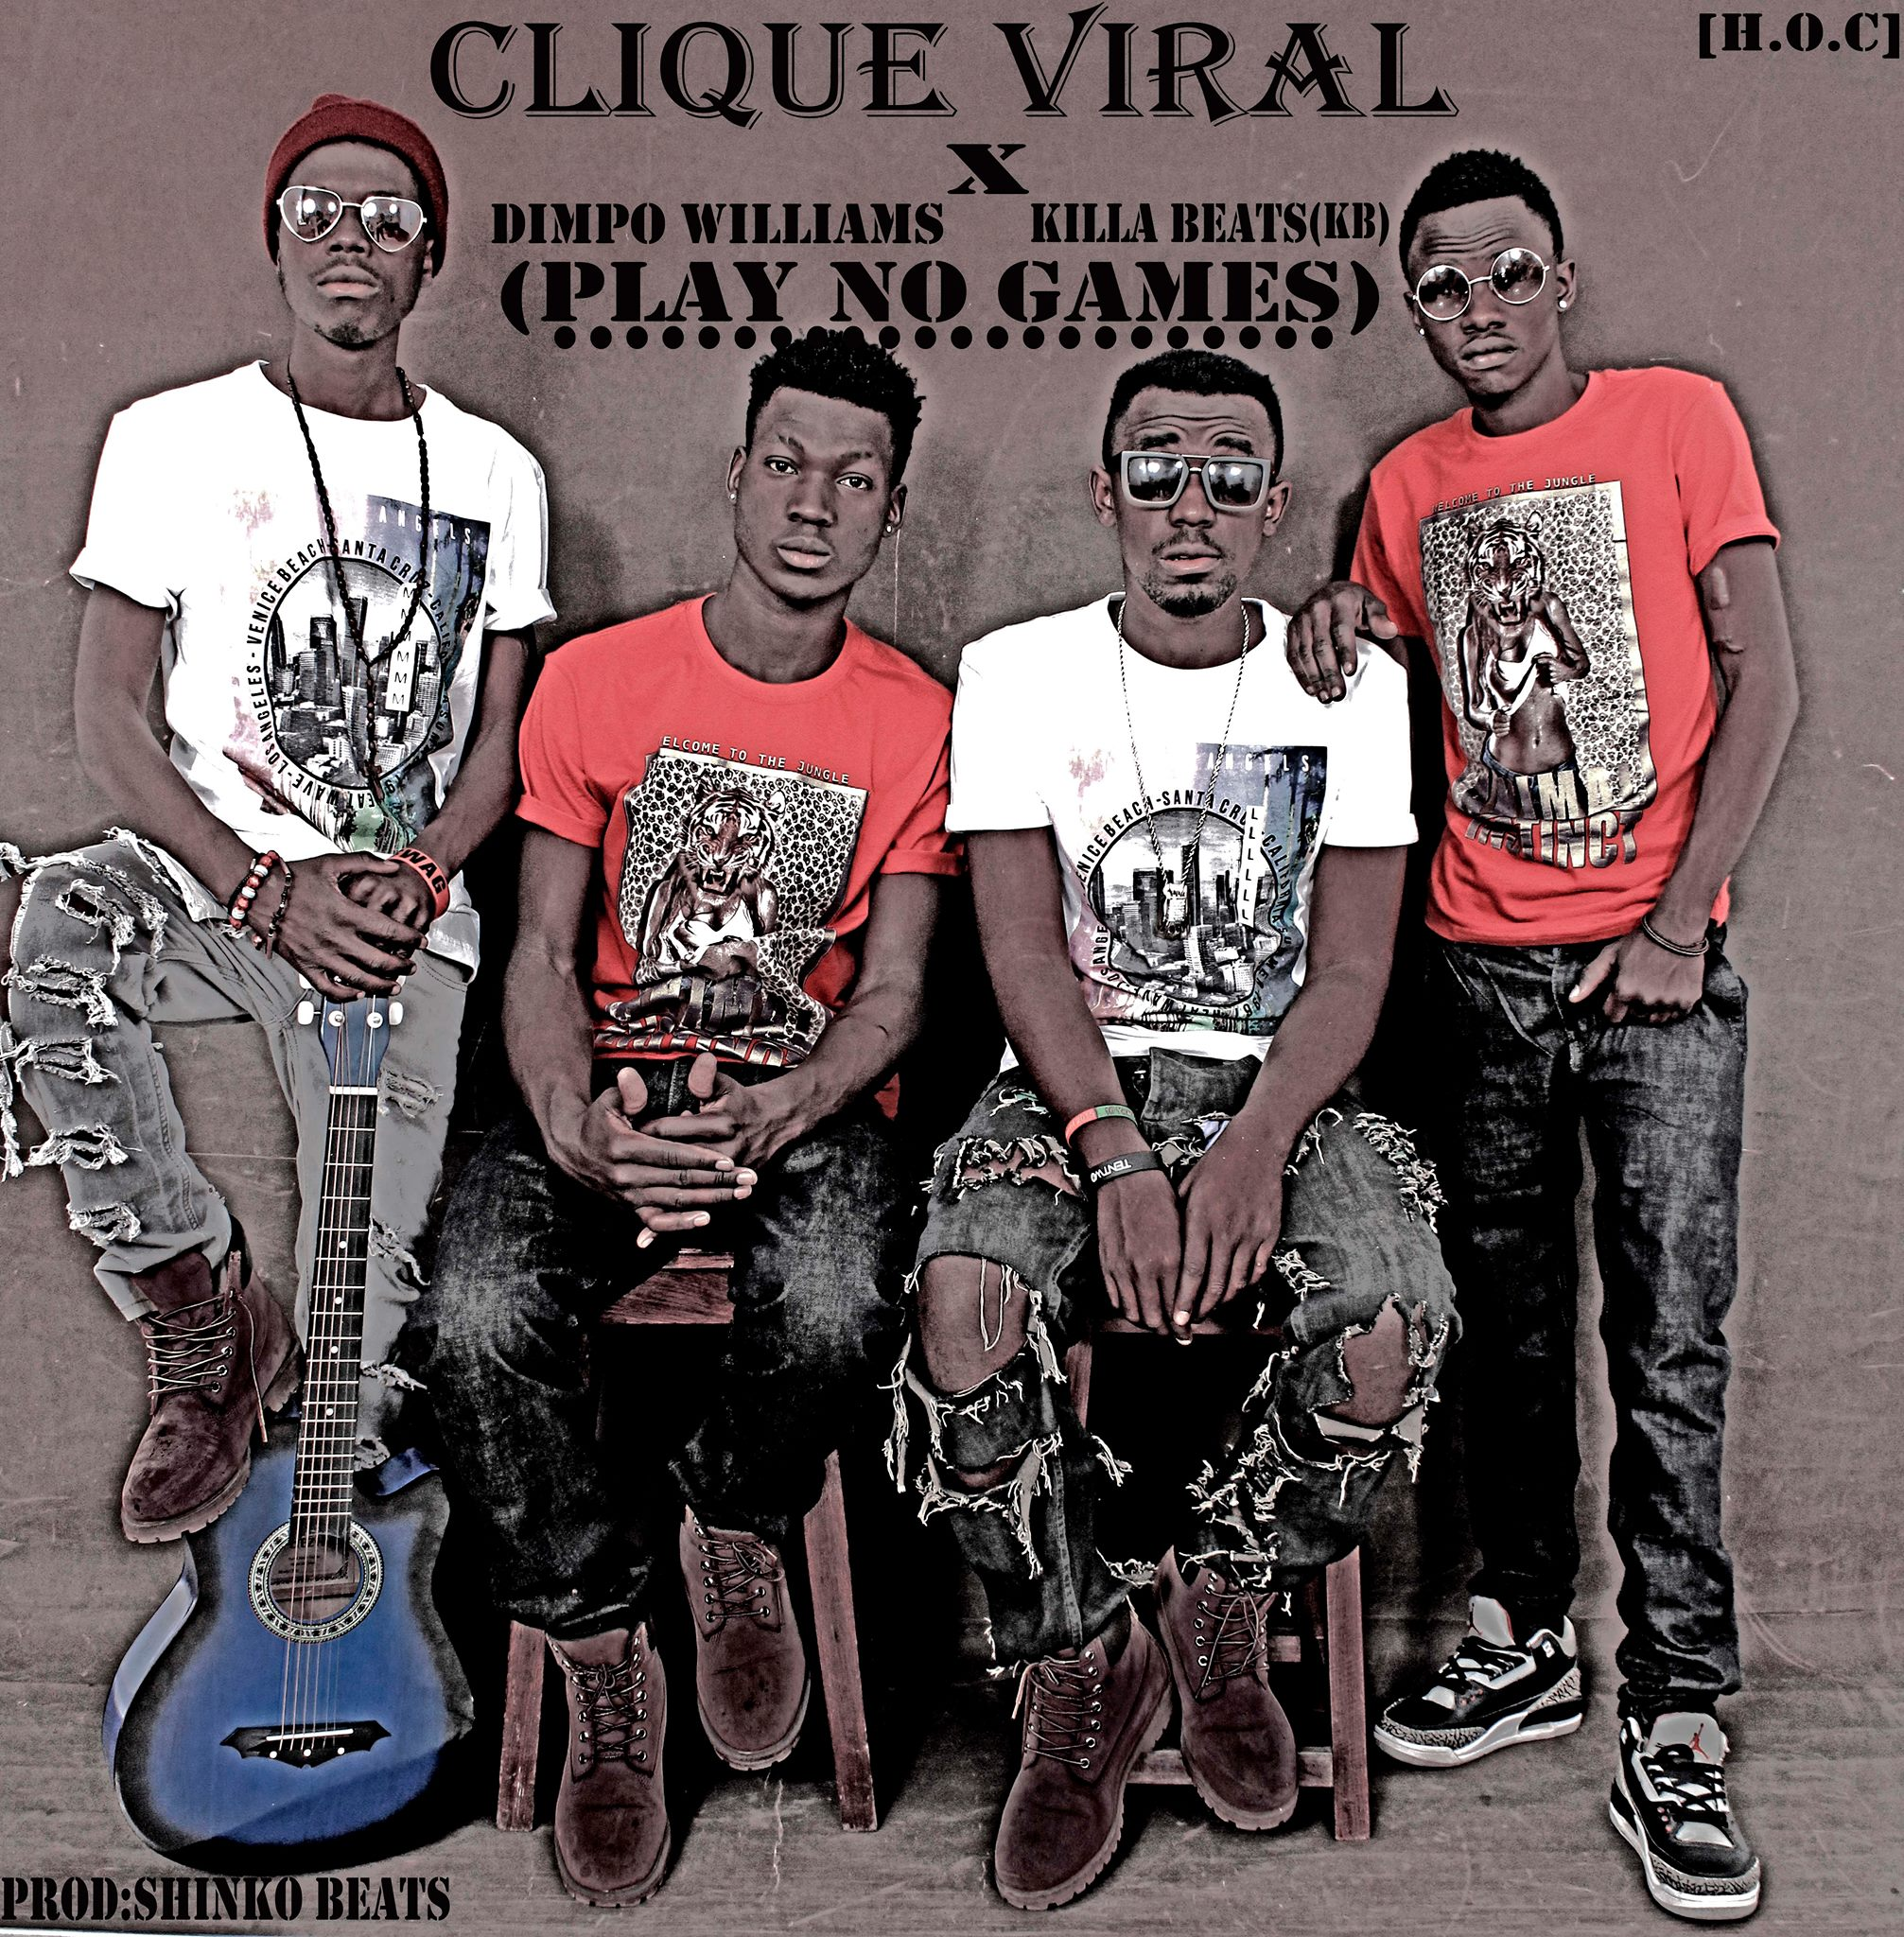 Zambia : Upcoming super group Clique viral present their ...